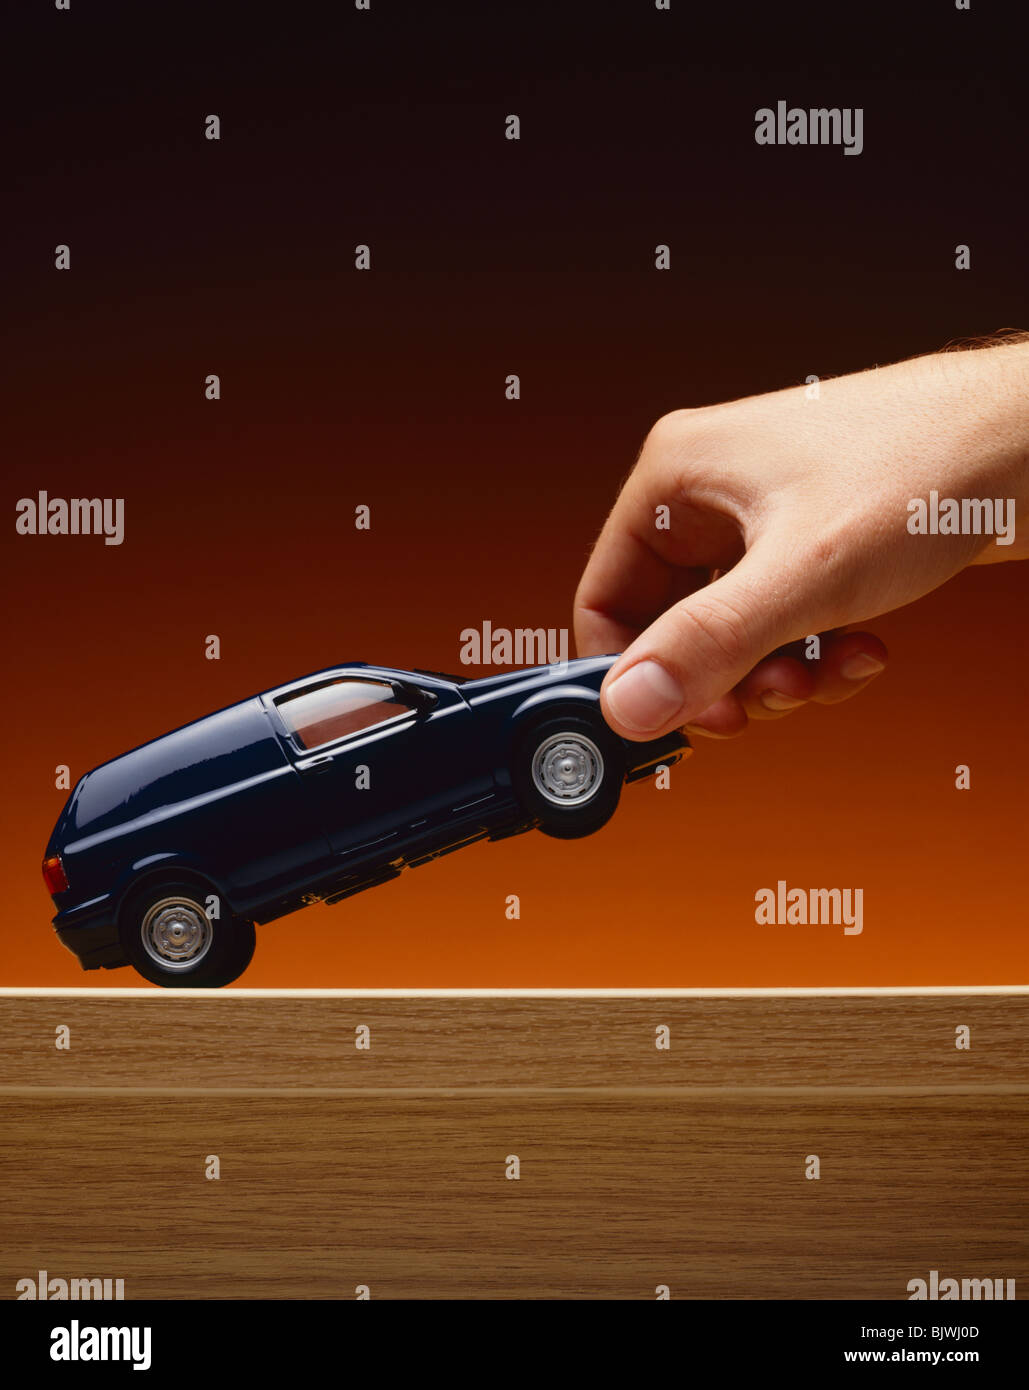 Hand Picking Up Model Van Stock Photo